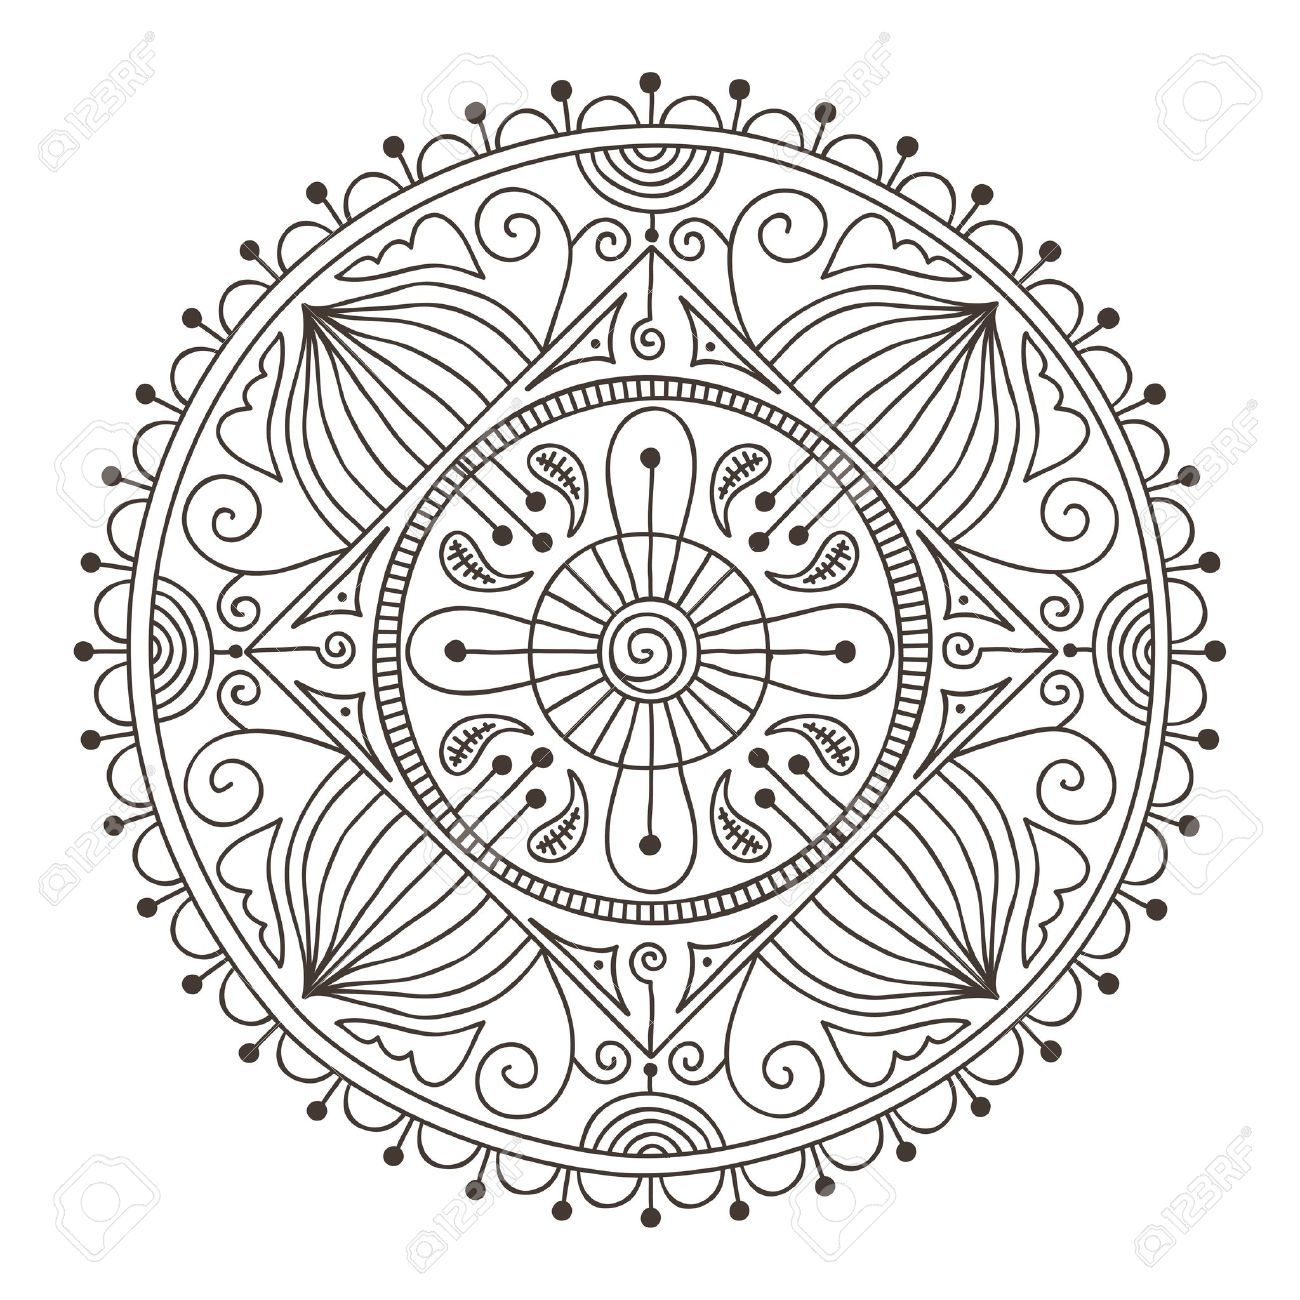 Beautiful Hand Drawn Doodle Mandala Royalty Free Cliparts